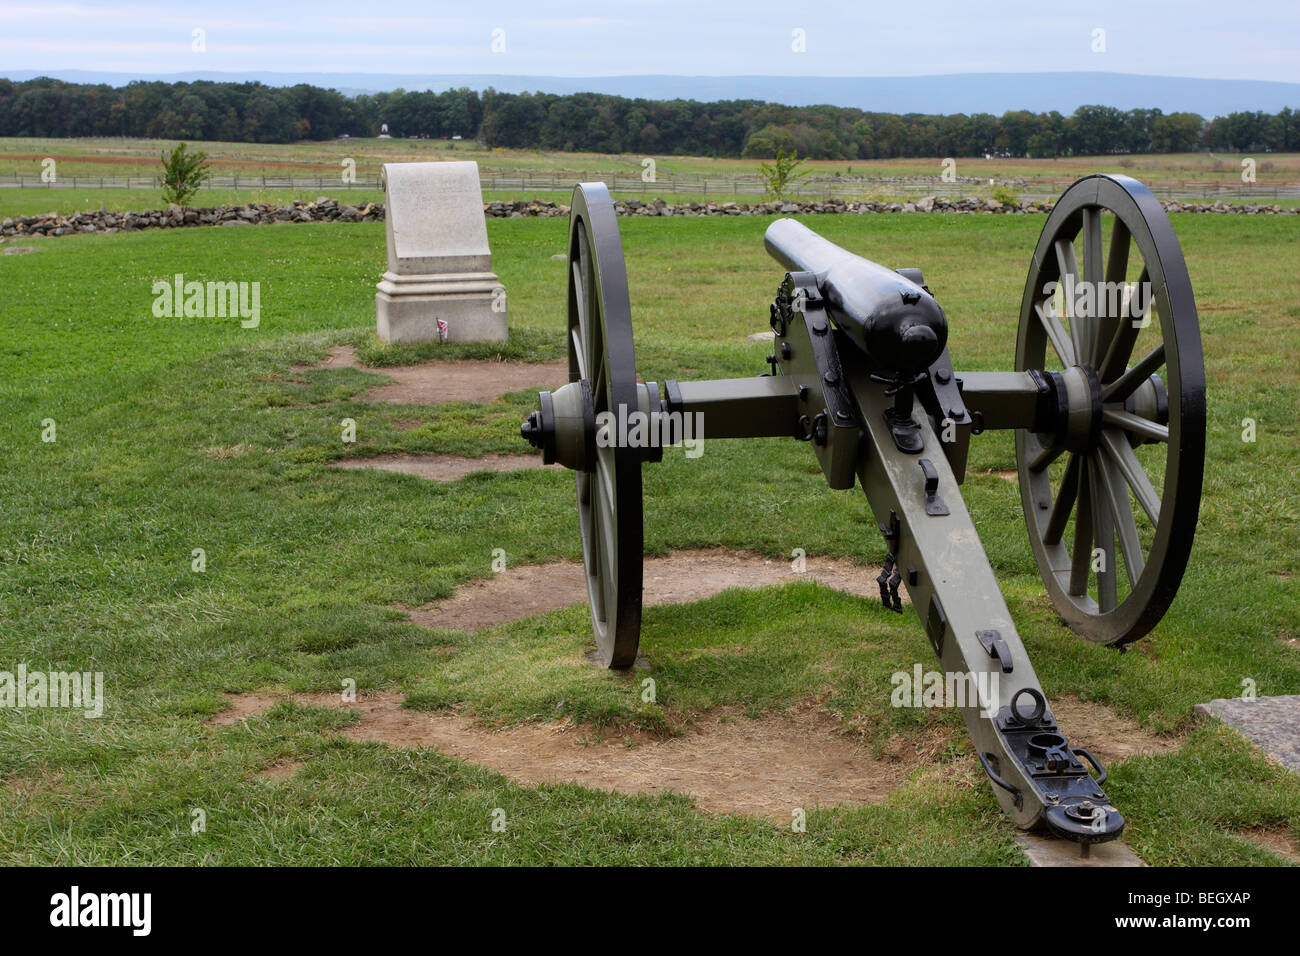 Union army cannon overlooking the fields of Pickett's Charge. Memorial to Lewis Armistead. - Stock Image